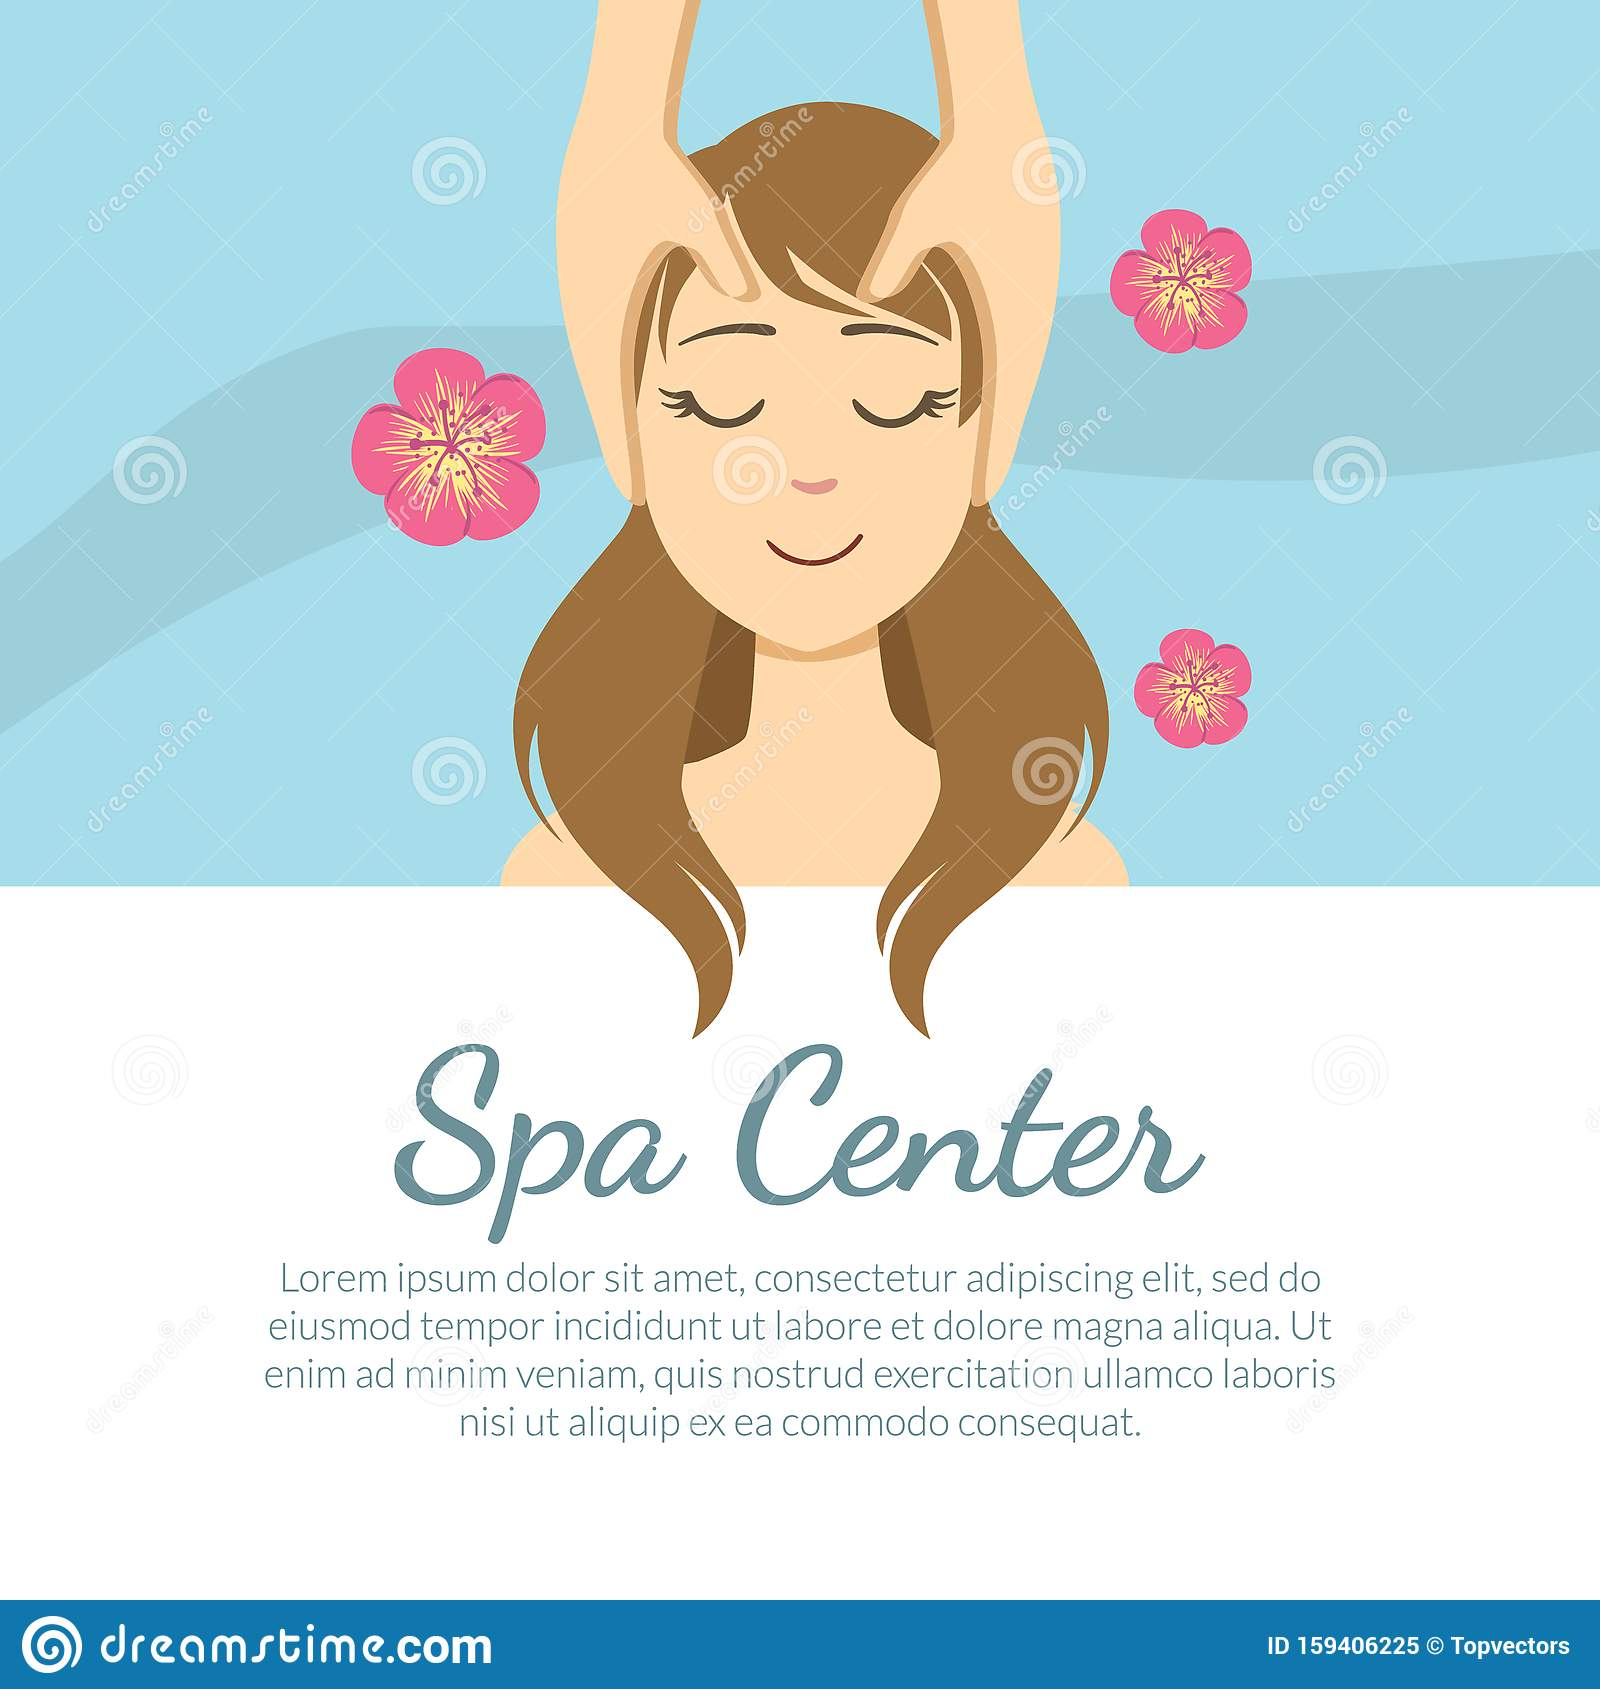 Spa Center Banner Template With Space For Text Young Woman Getting Face Massage Facial Treatments Vector Illustration Stock Vector Illustration Of Information Banner 159406225